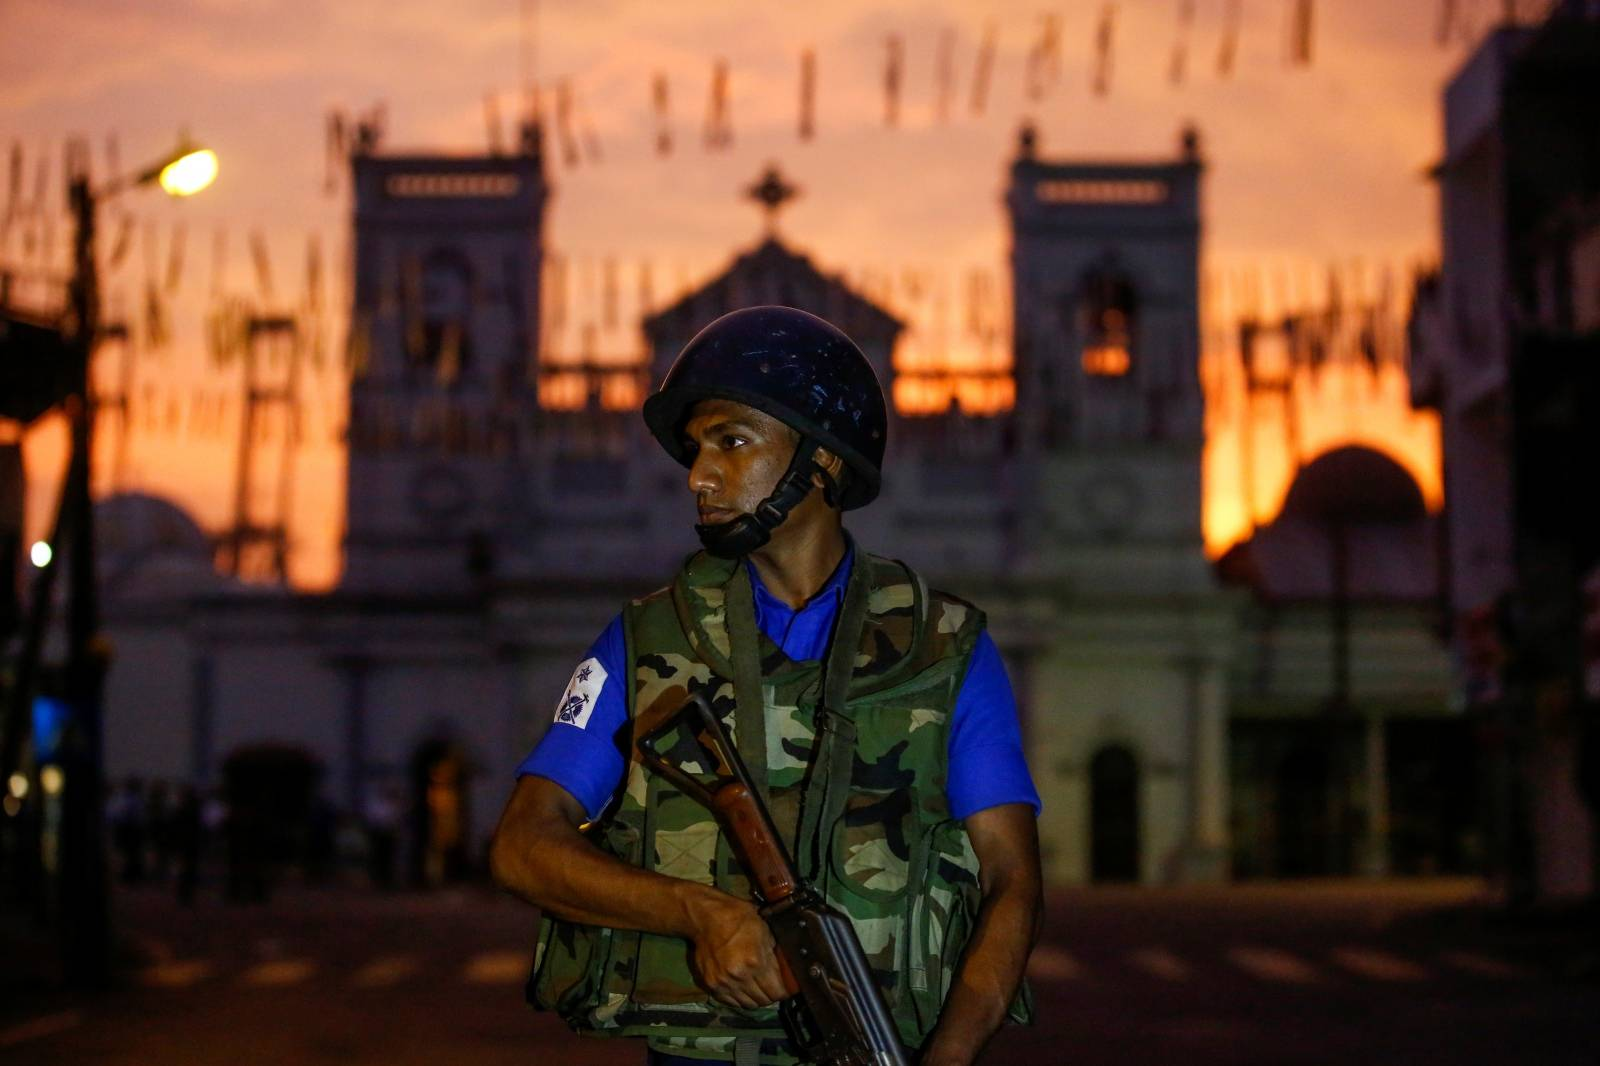 A security officer stands guard outside St. Antony's Shrine in Colombo